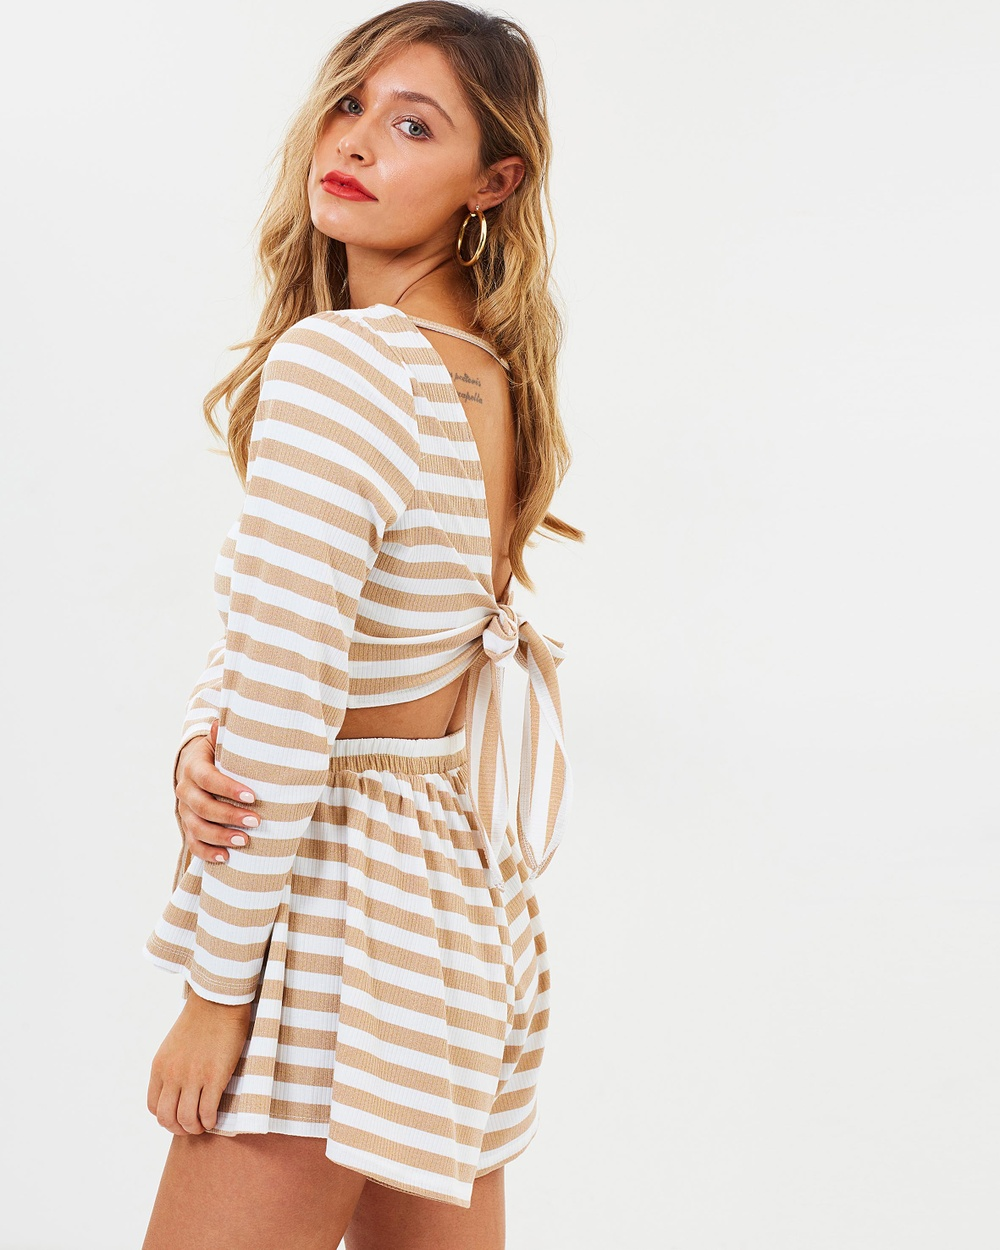 Toby Heart Ginger Like Heaven Tie Top Cropped tops Gold & White Like Heaven Tie Top